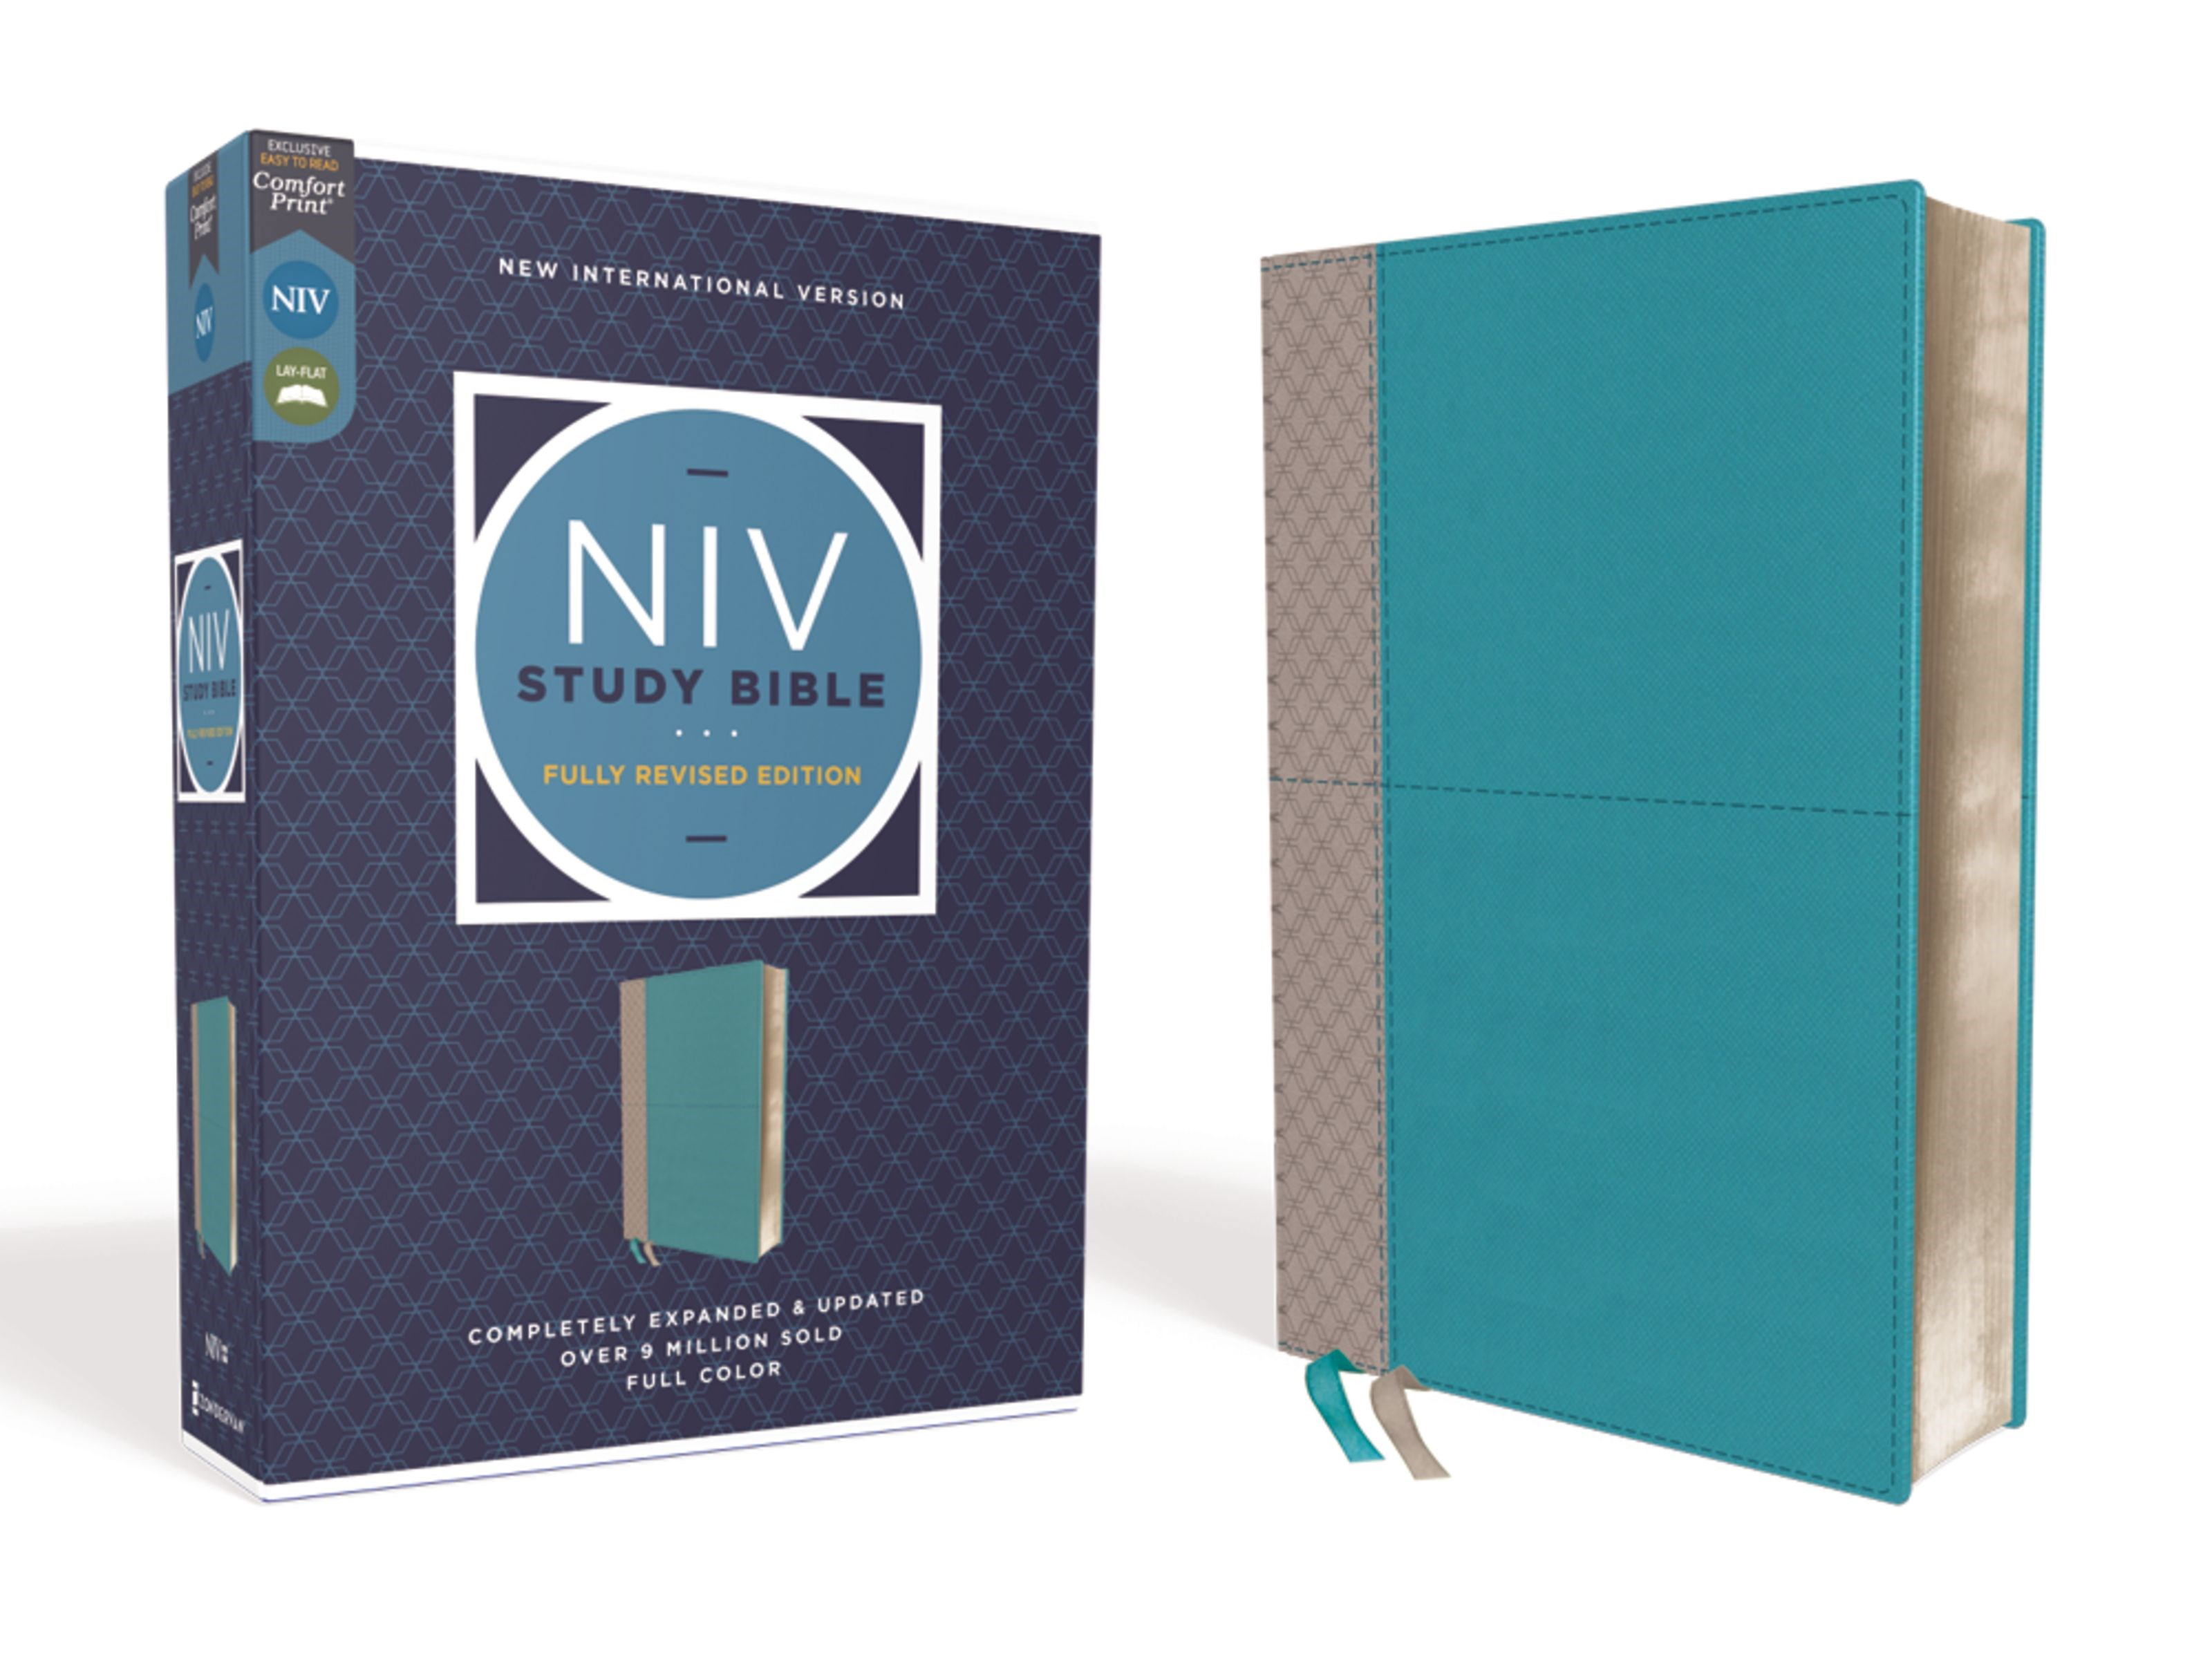 NIV Study Bible (Fully Revised Edition) (Comfort Print)-Teal/Gray Leathersoft